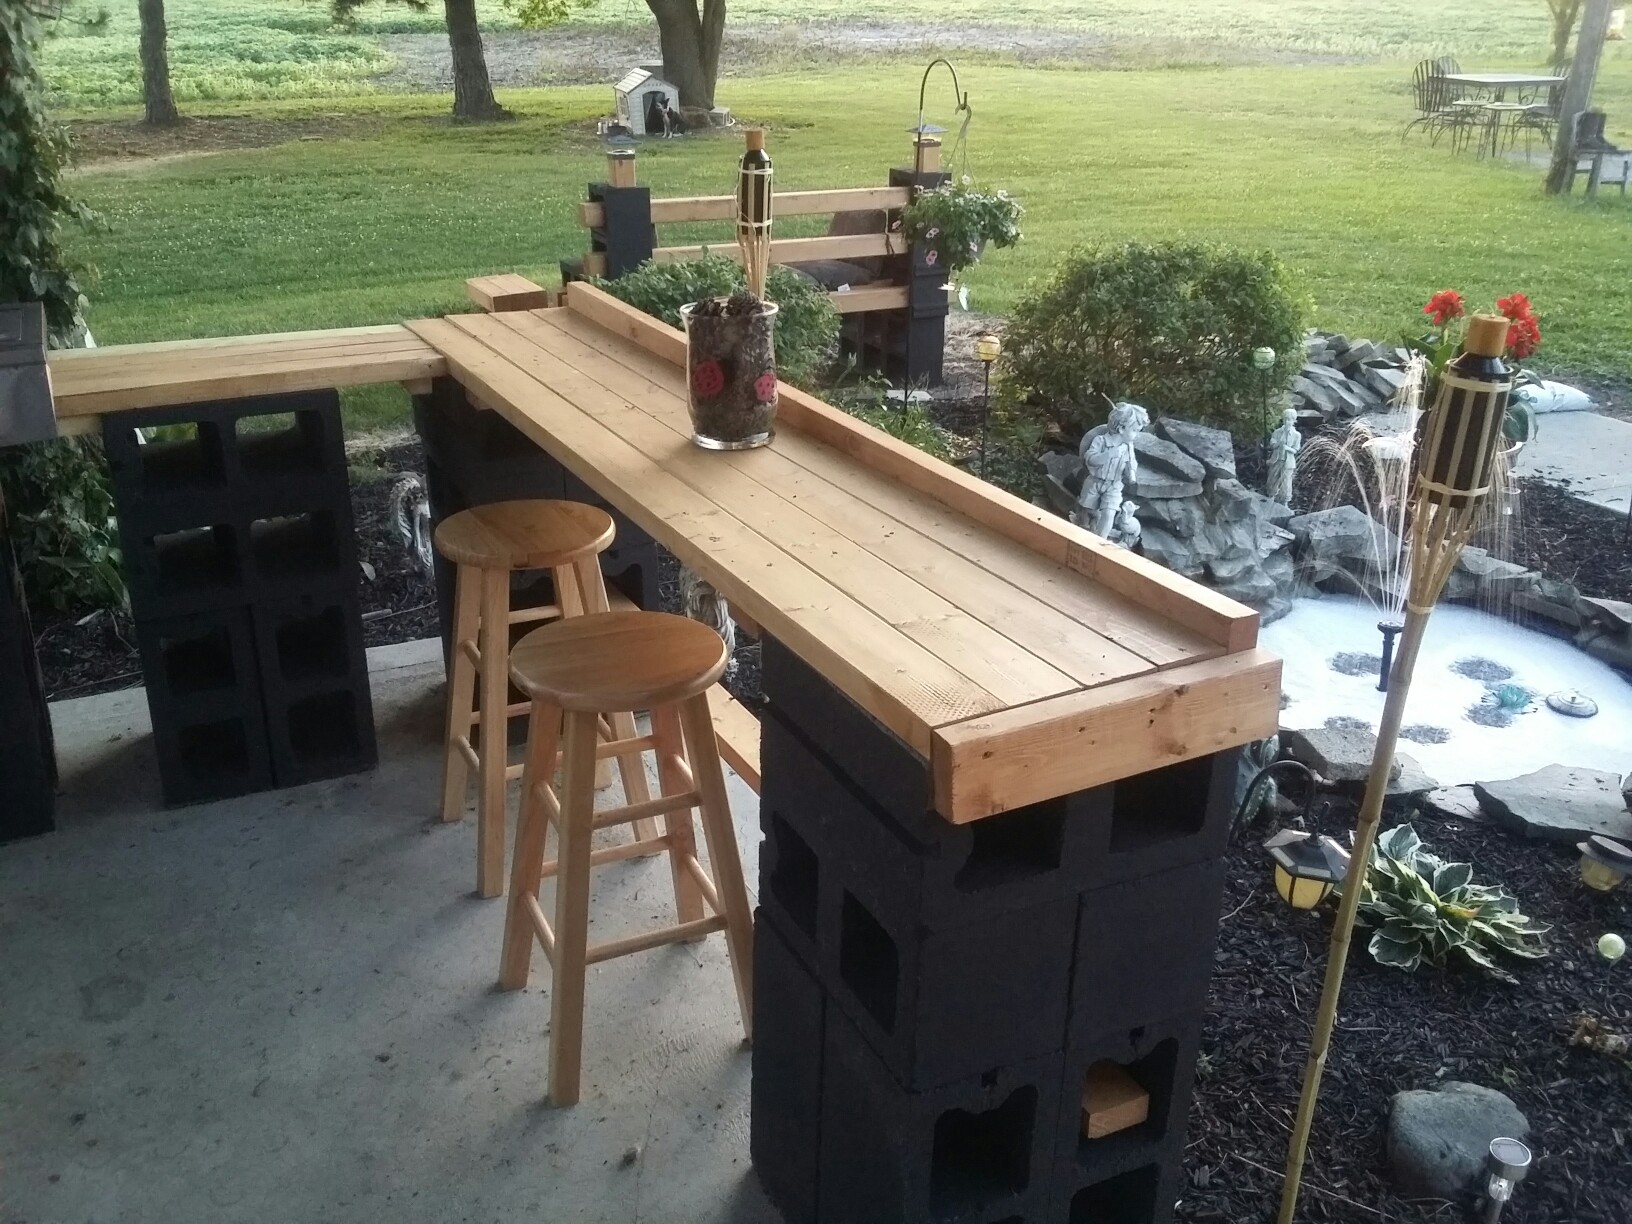 Diy outdoor bar designs - 20 ways to add cool additions to ... on Patio With Bar Ideas id=46862